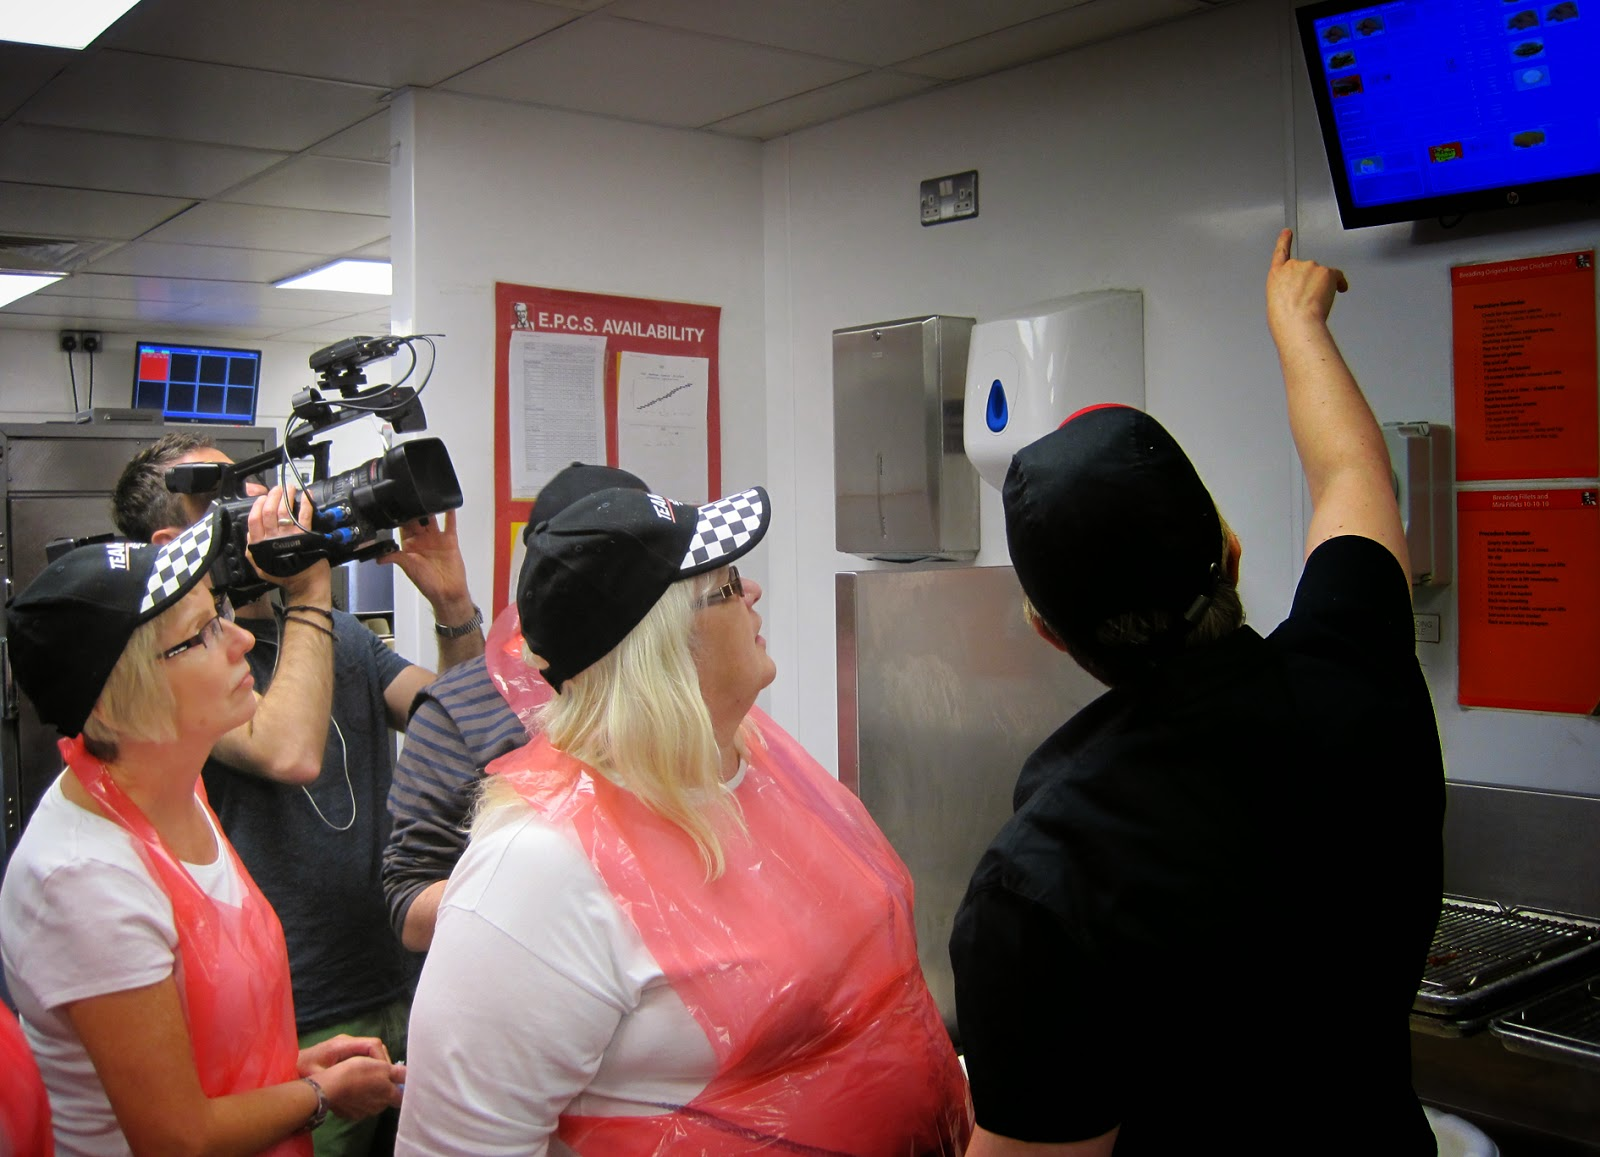 Behind the Scenes at KFC with The BBC Filming